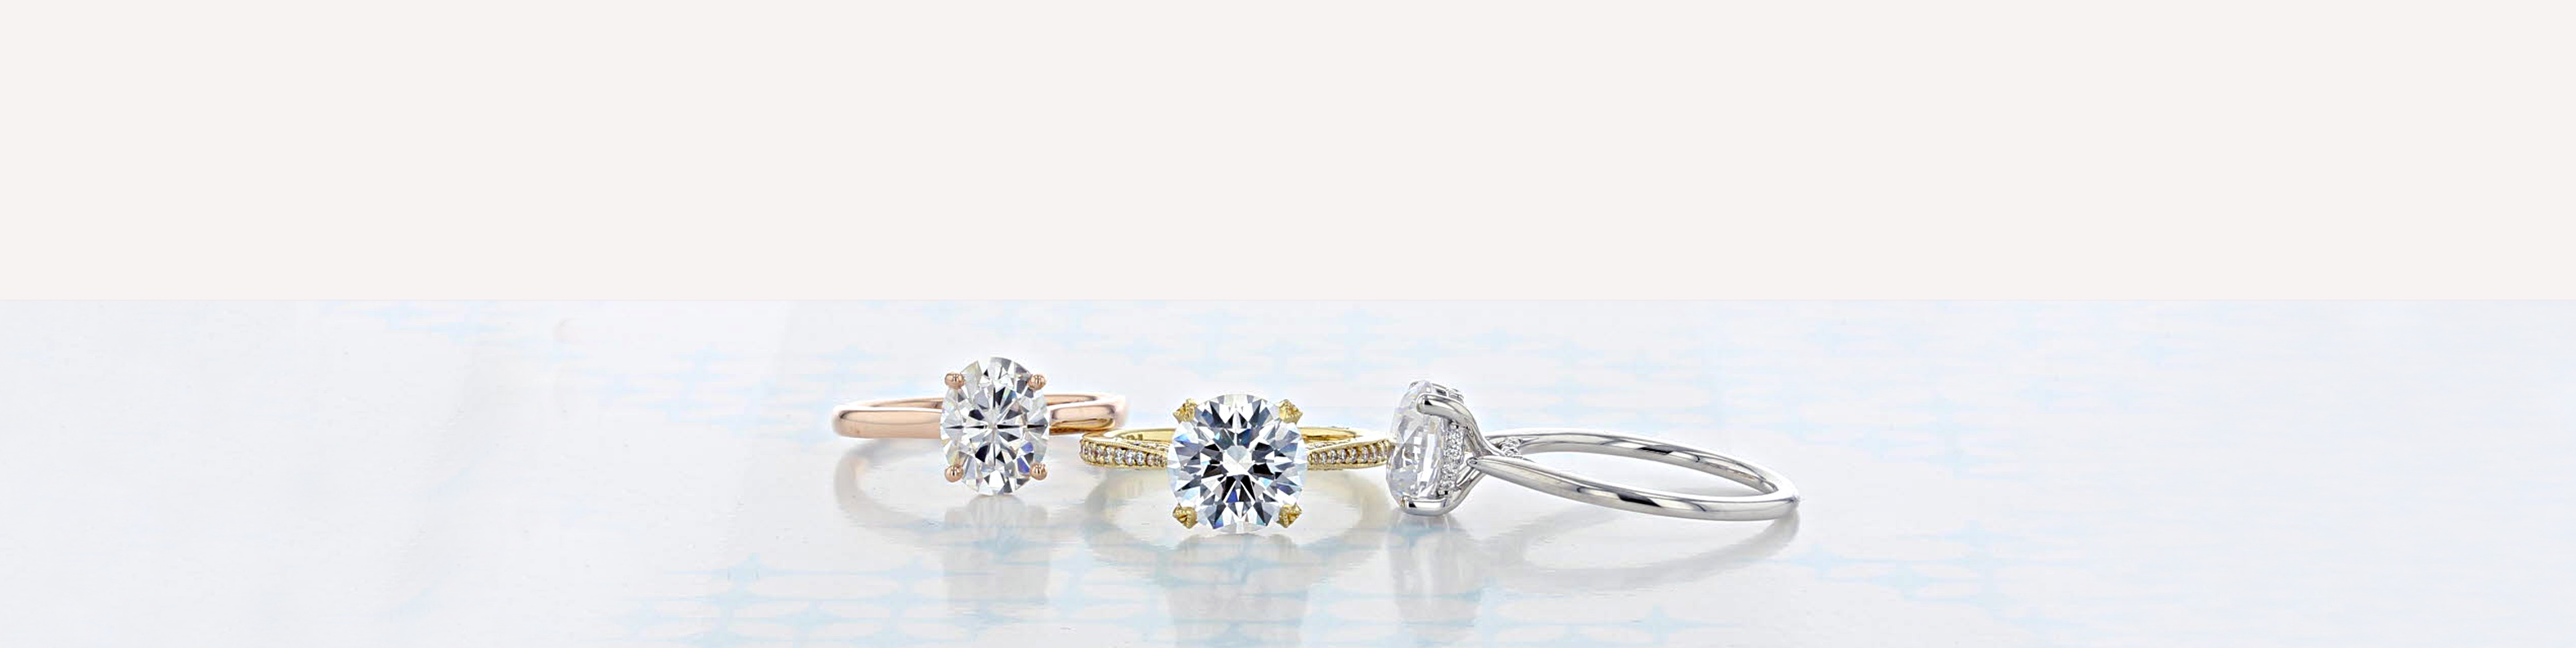 Remarkable Engagement Rings